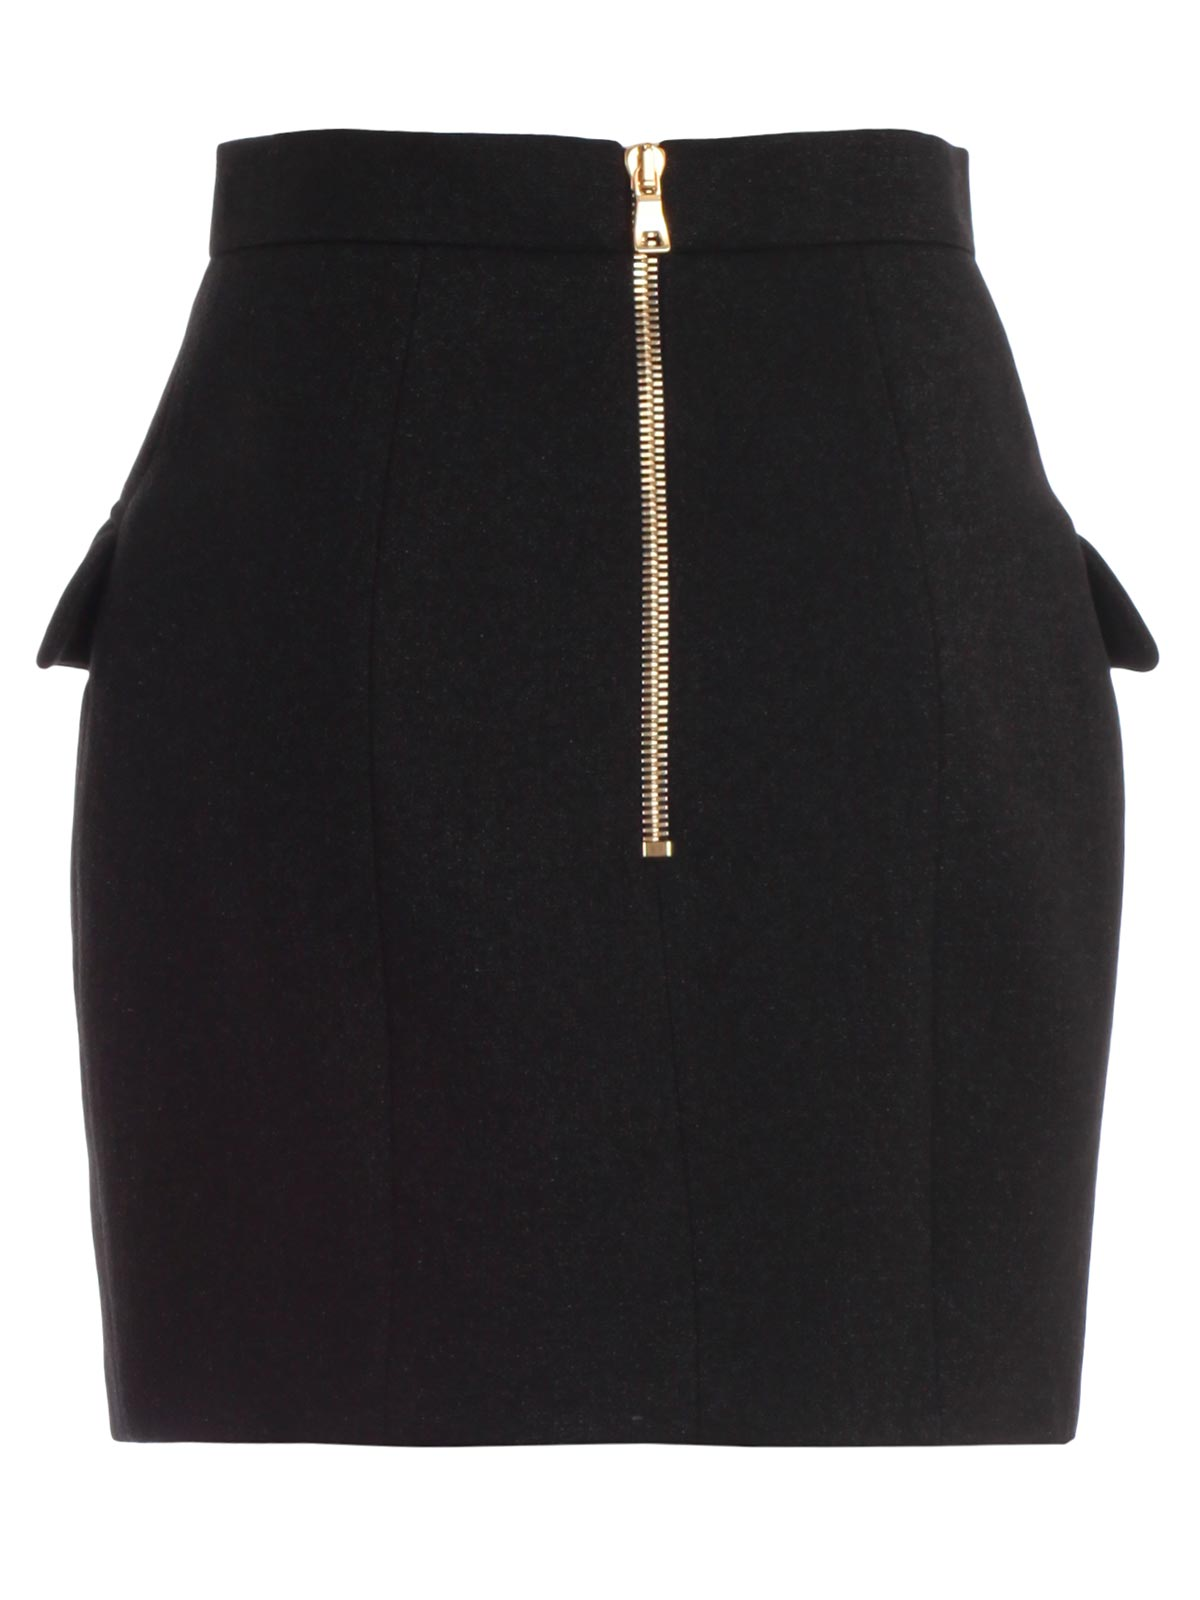 Picture of Balmain Skirt